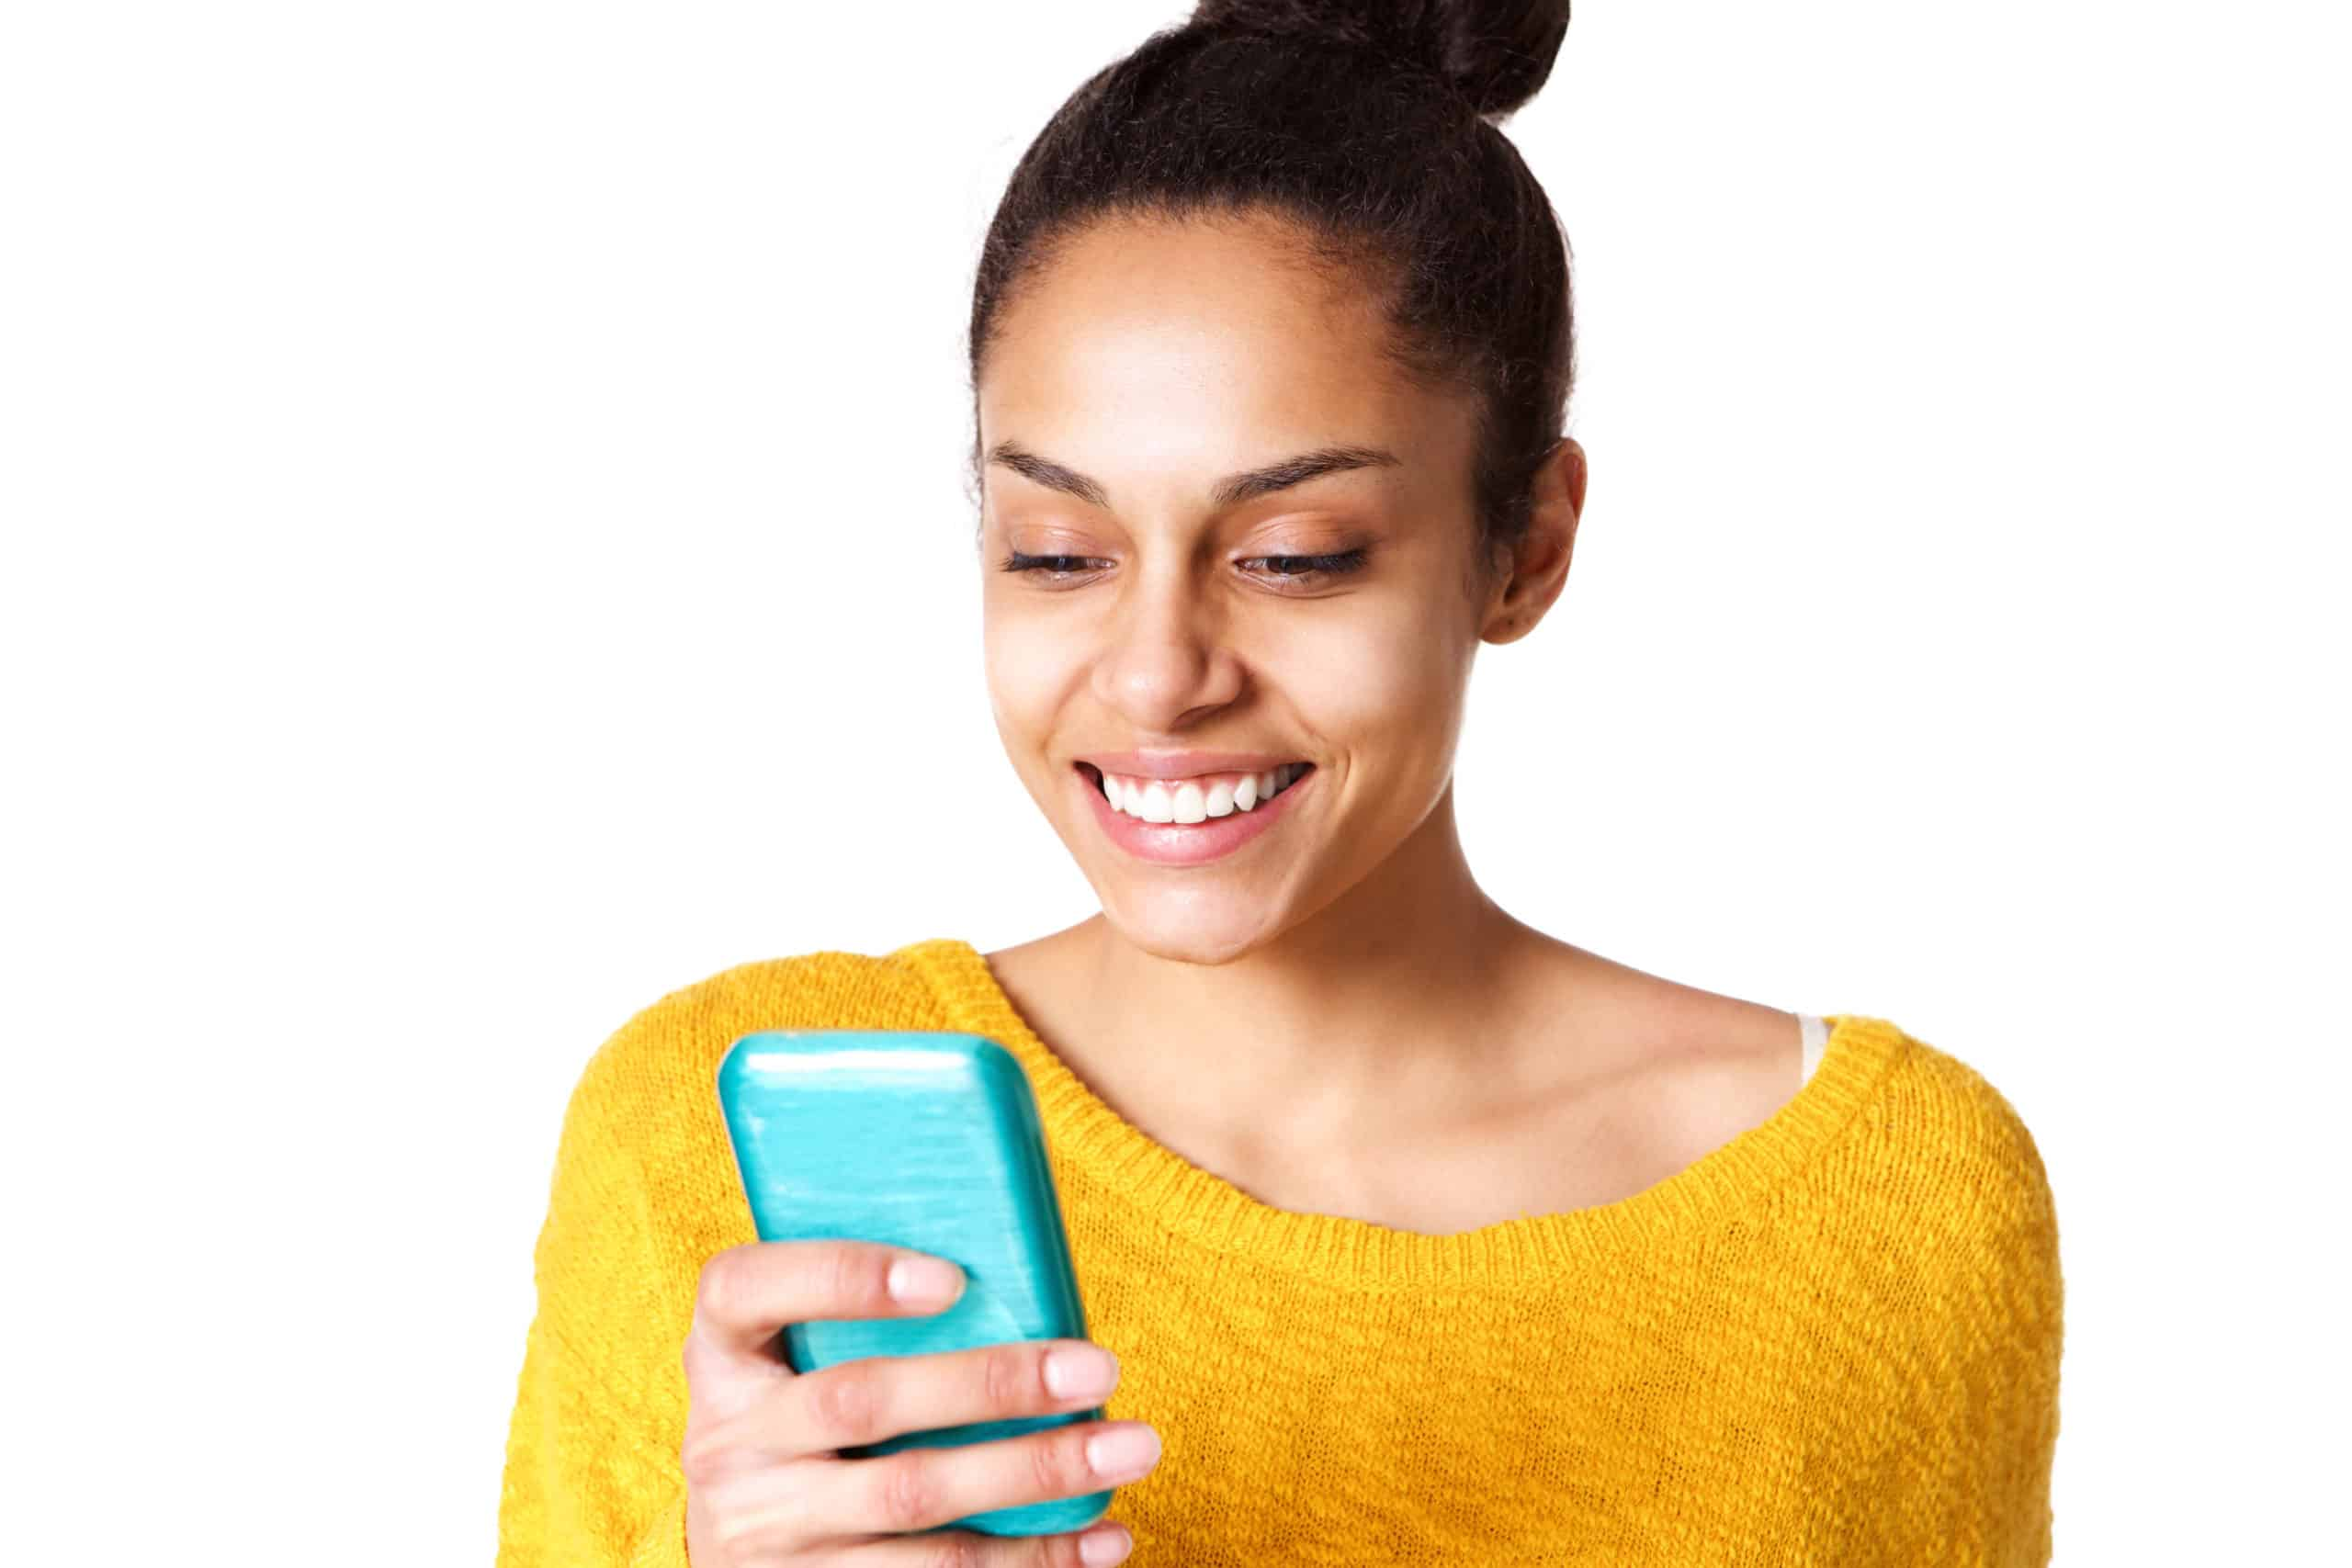 Close up portrait of happy young african woman reading text message on mobile phone against white background